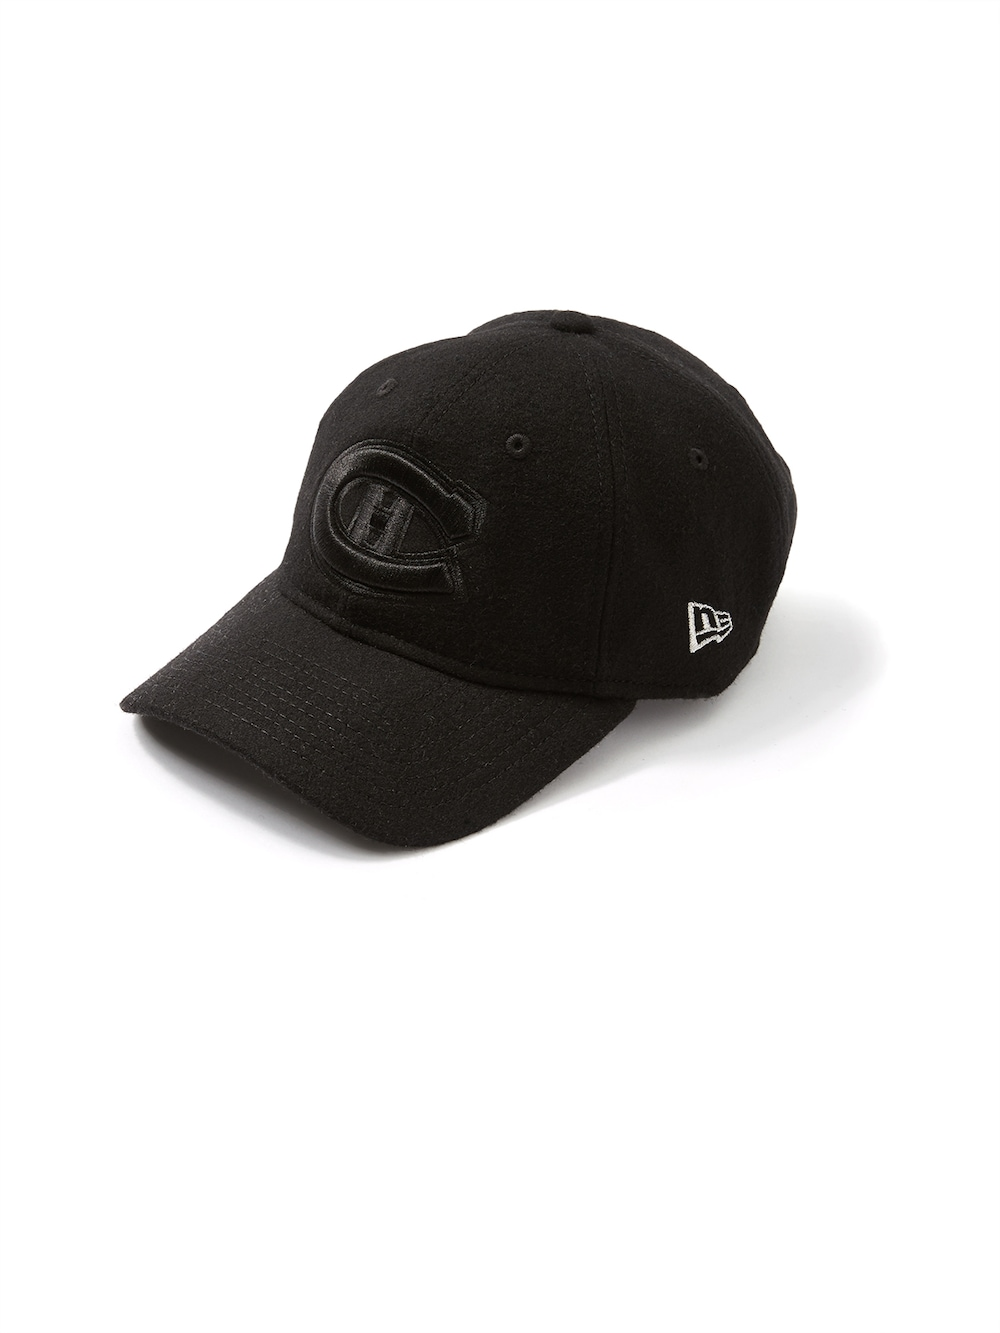 Frank Oak Montreal Canadiens Special Edition Series Cap In Black Modesens